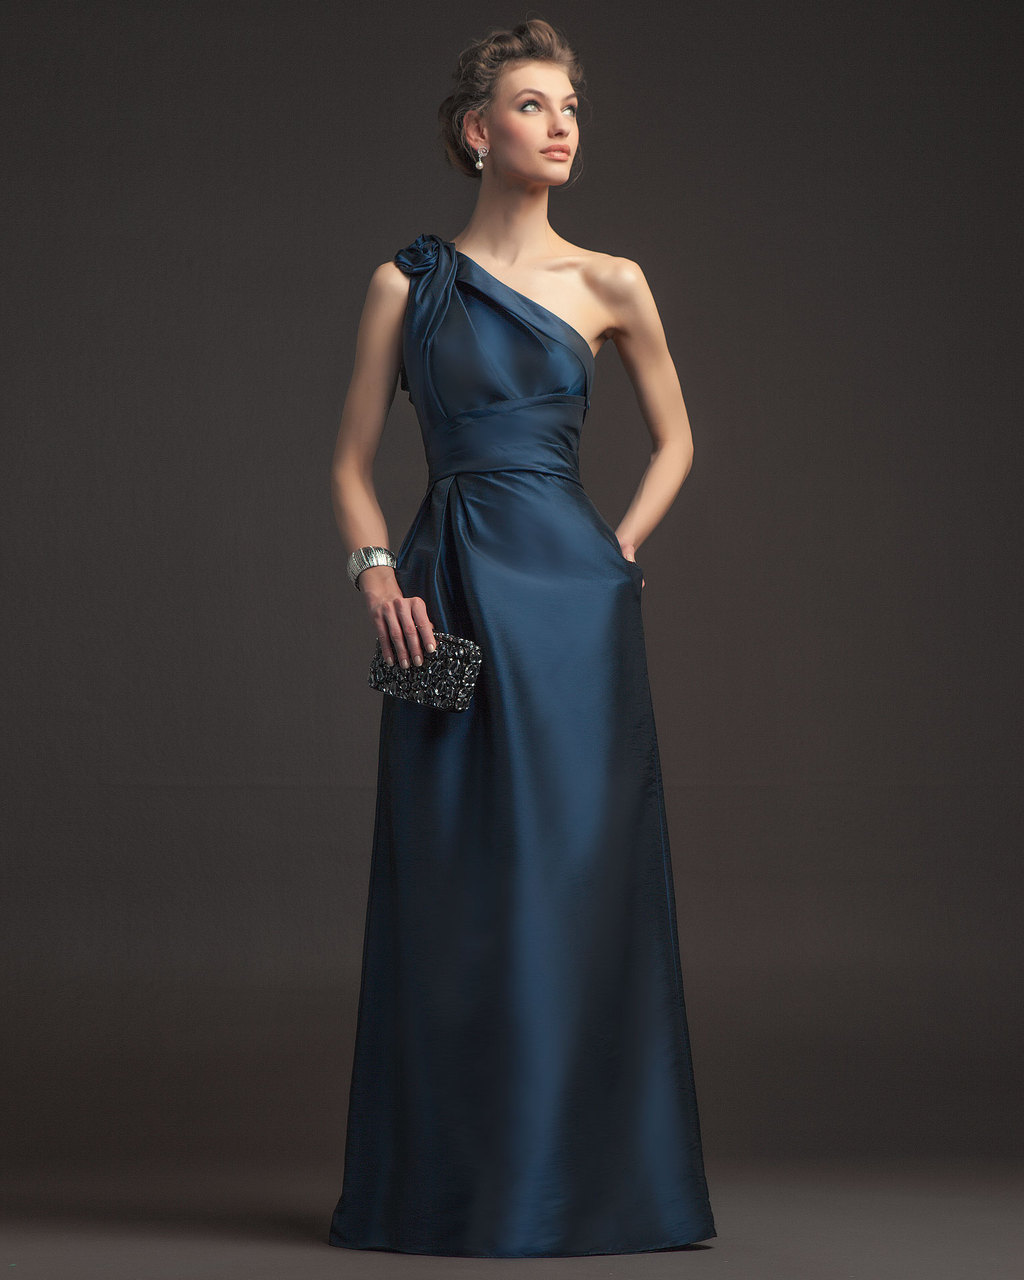 Elegant navy blue bridesmaid dress long gown bhldn ombrellifo Choice Image